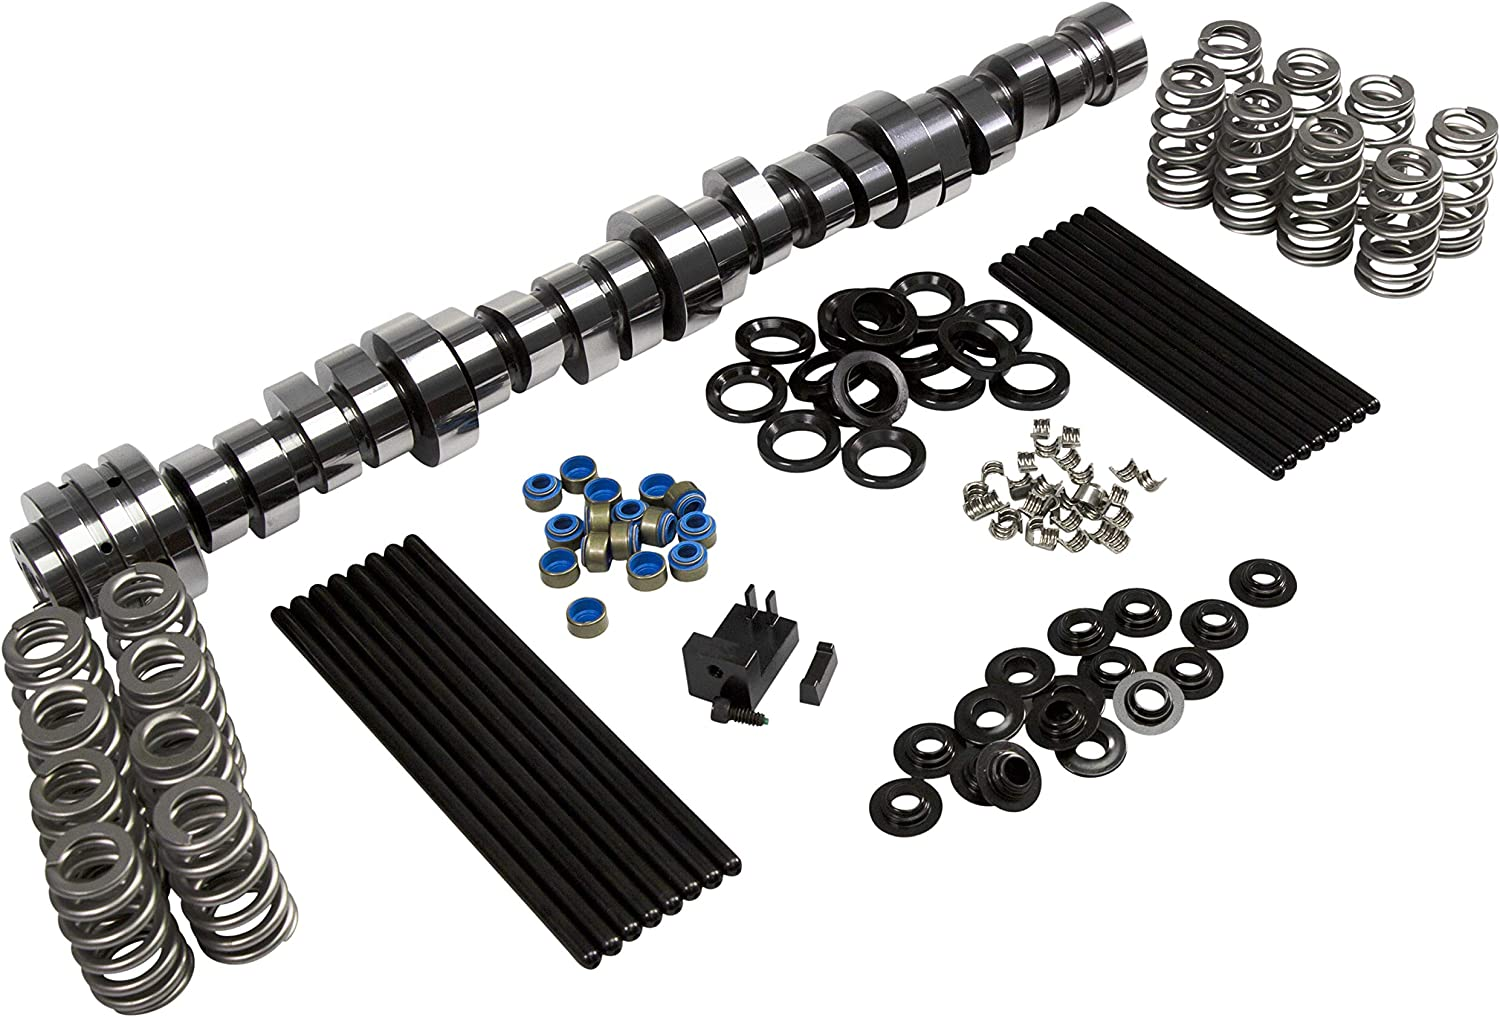 Dodge 5.7L HEMI COMP Cams 201-300-17 NSR HRT No Springs Required Stage 1 Cam for 09